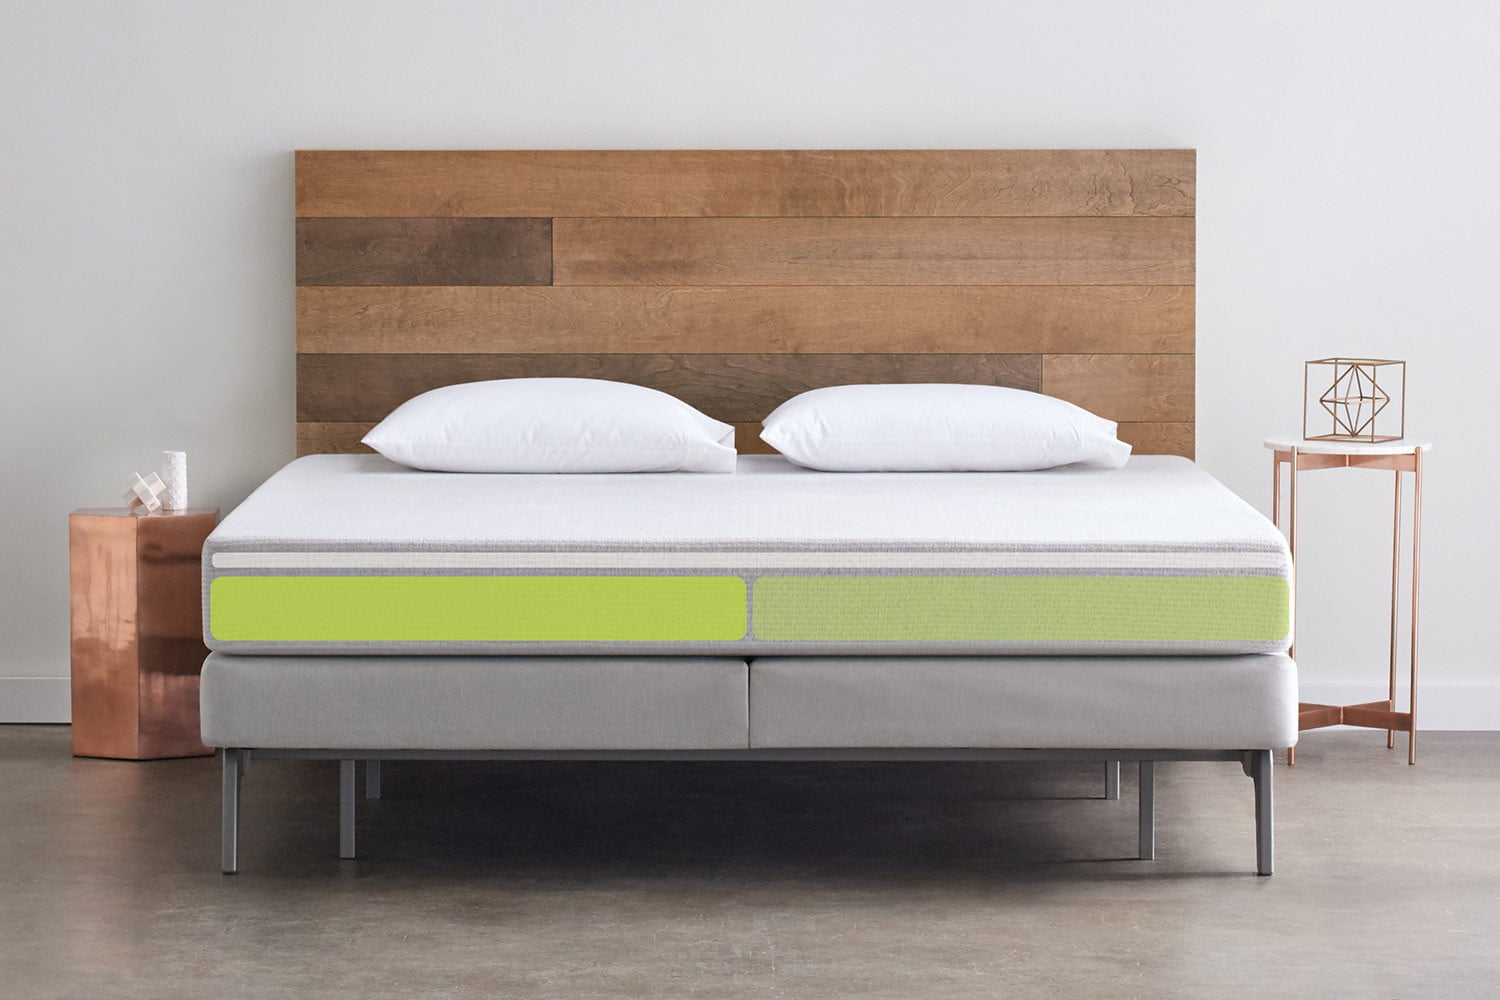 couch number pic cali as sleeper breathtaking top great comfort split platform bed imgid select americanlisted mattress sleep i and size twin king fascinating of mesmerizing frame concept popular